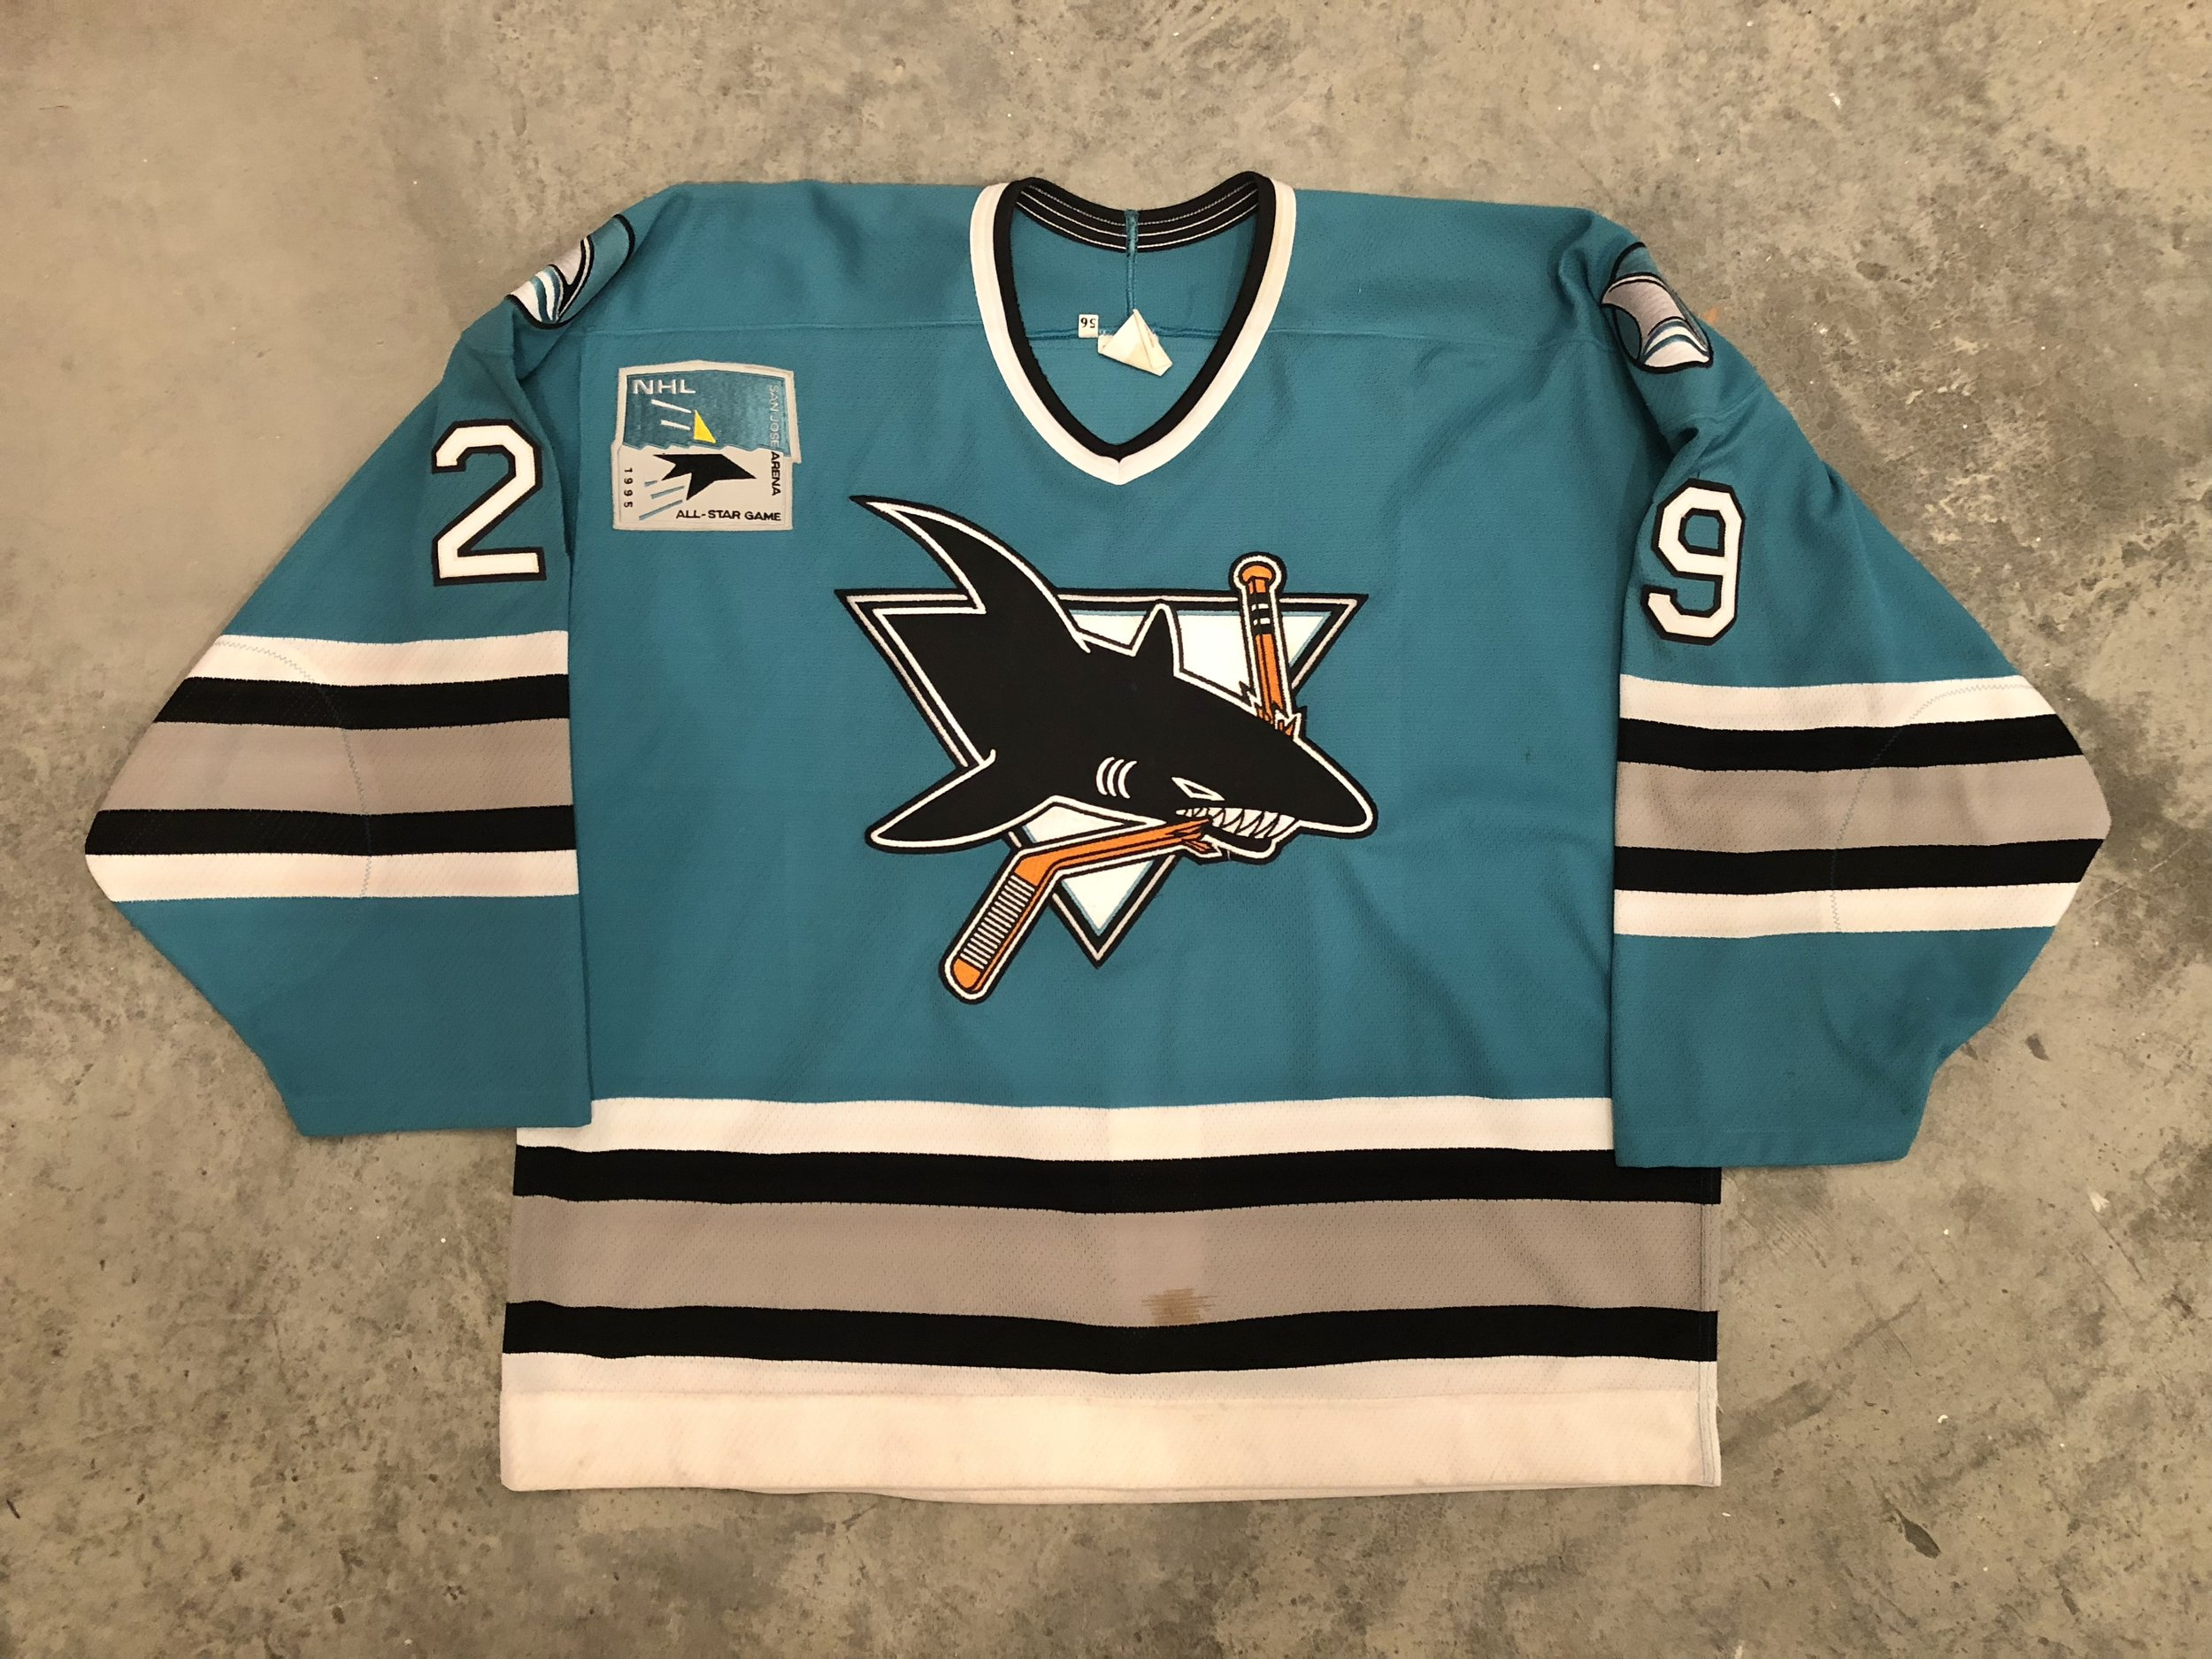 1994 playoffs Jimmy Waite game worn jersey with 1995 NHL All Star game patch